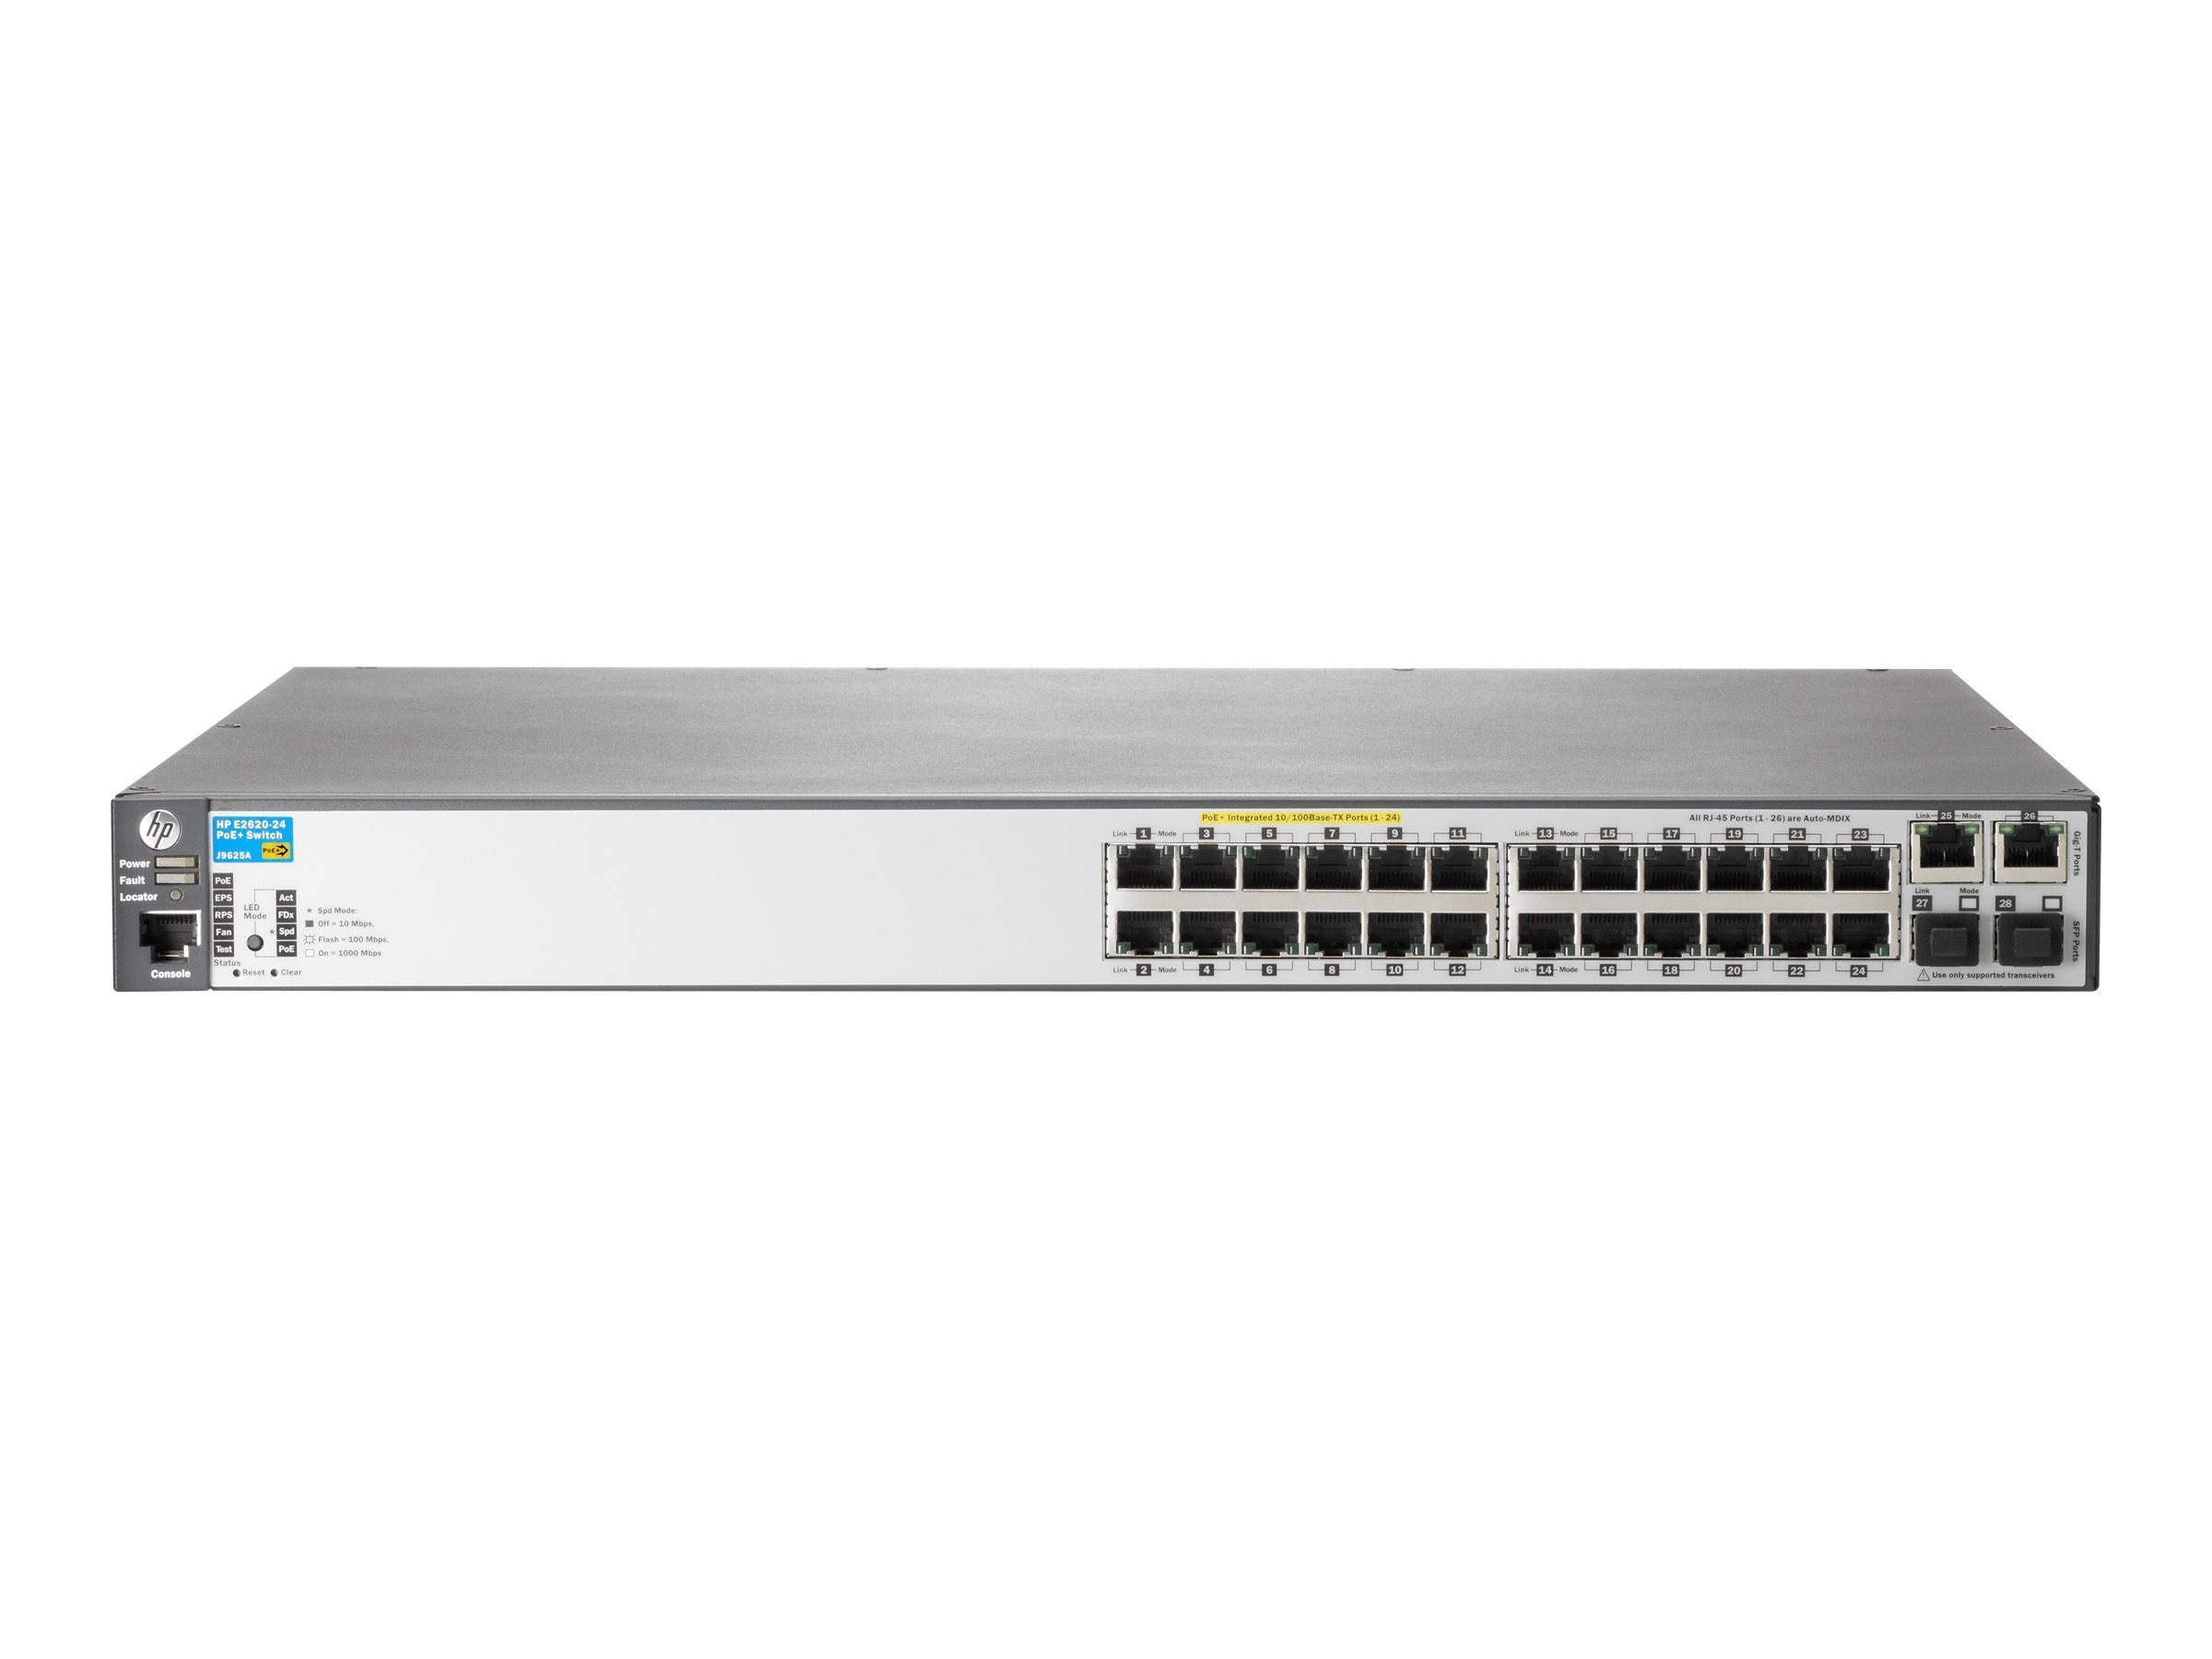 HPE Aruba 2620 24 PoE+ Switch